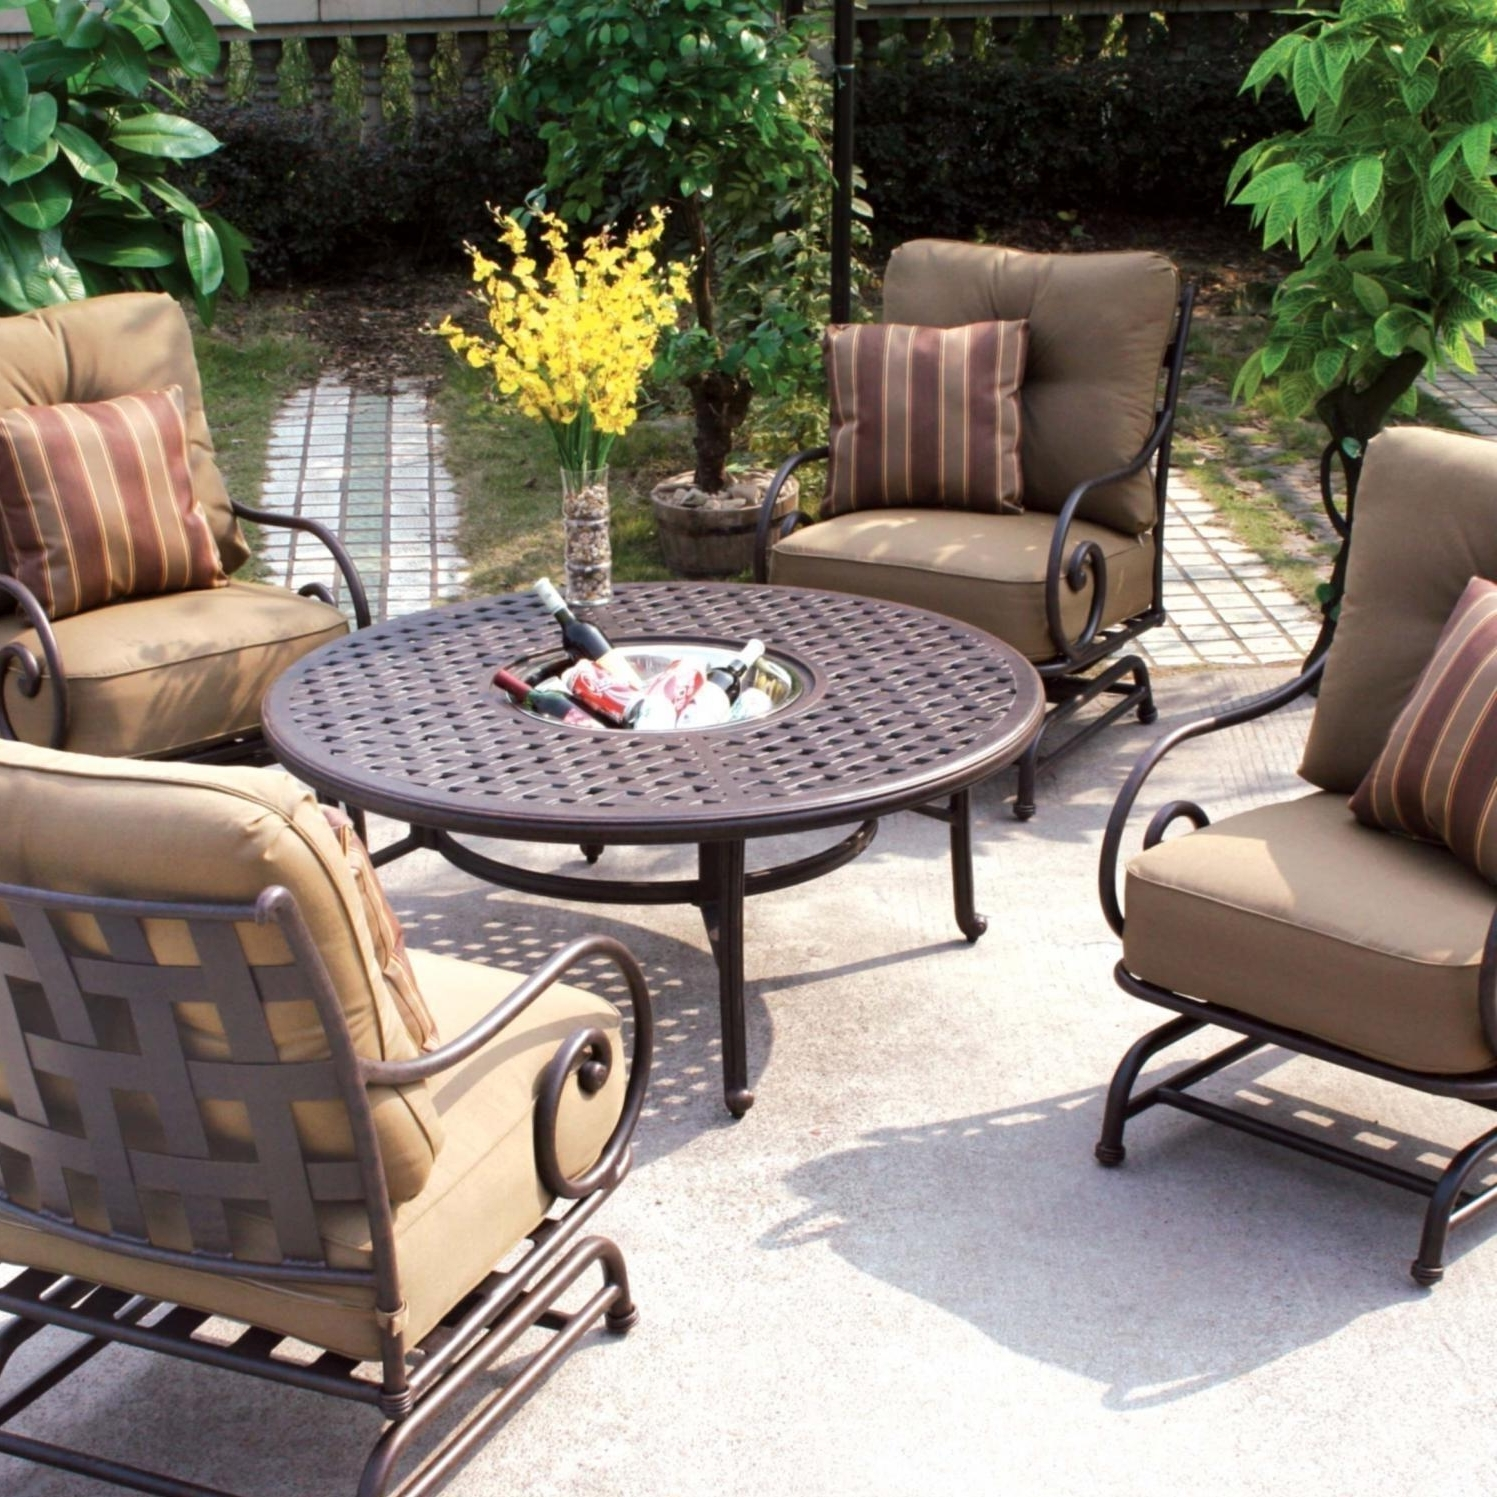 Wood Patio Furniture Conversation Sets Pertaining To Famous Superb Outdoor Furniture Conversation Sets Patio Clearance Wood My (View 13 of 15)